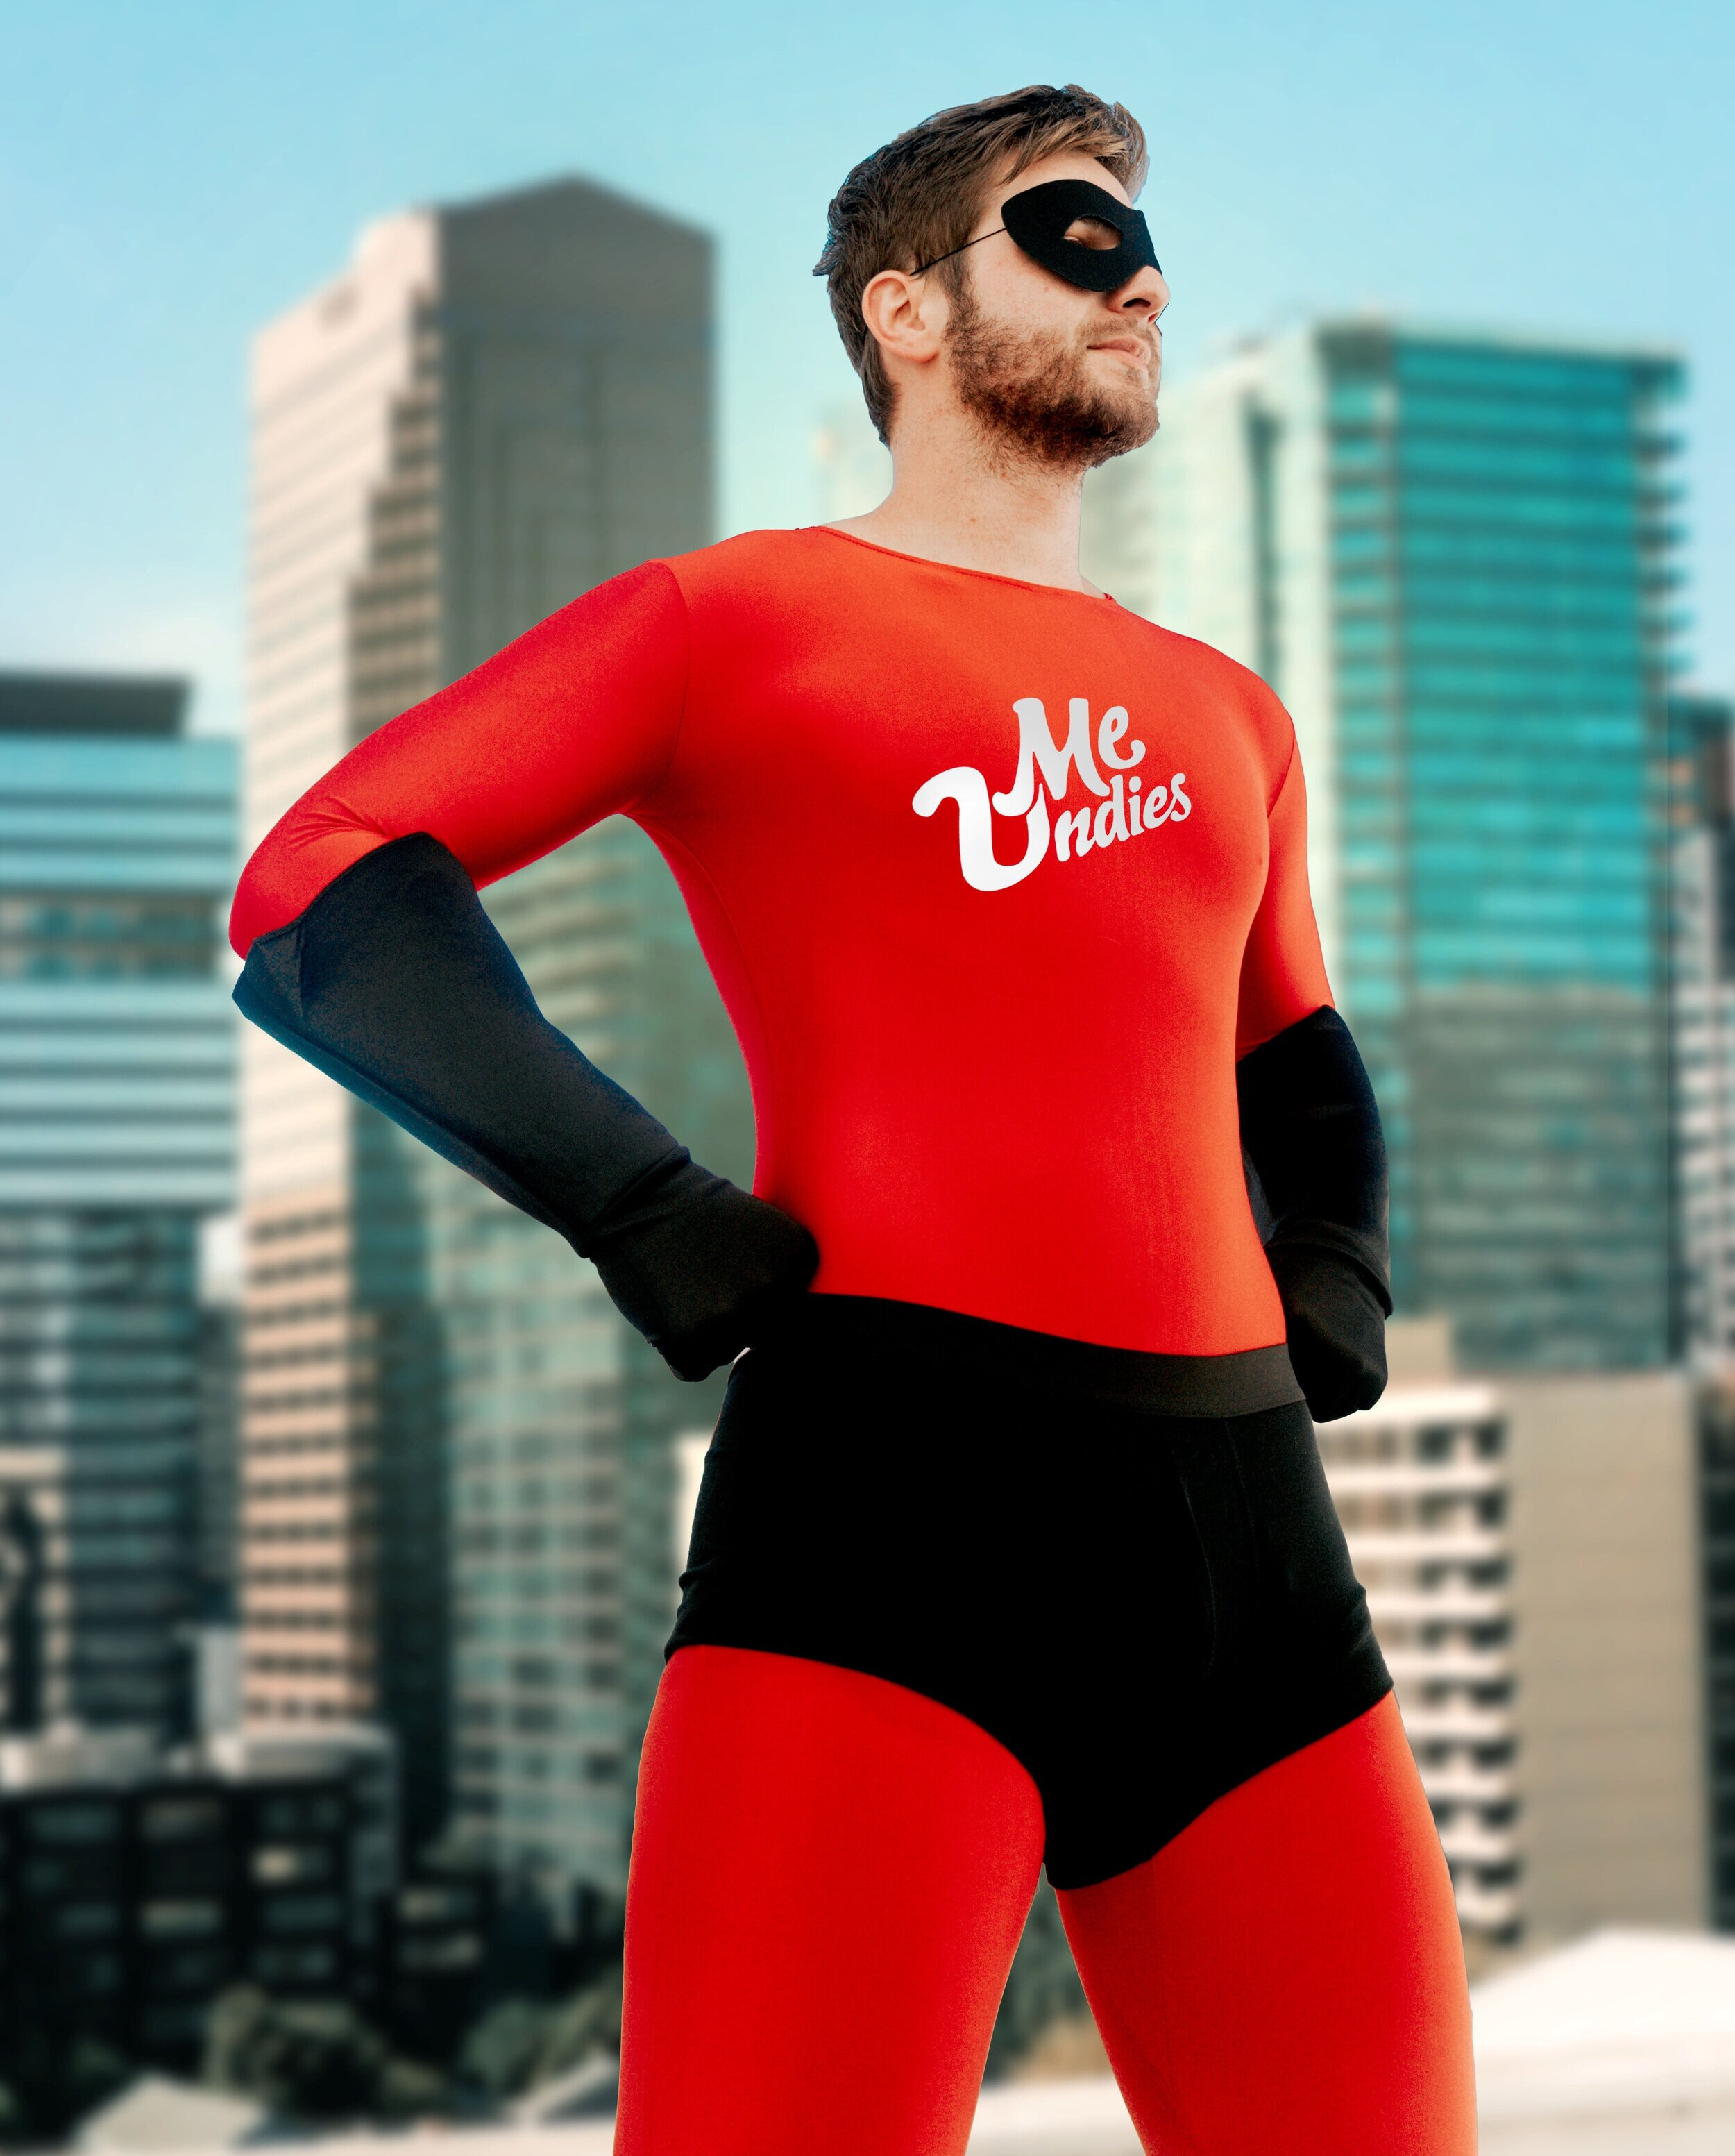 Incredibles - The sequel we all needed. What superhero doesn't wear Undies over their outfit? None. Yeah, so suit up in red and complete the heroic look with our simple black Undies in any cut you want. We prefer classic Briefs.